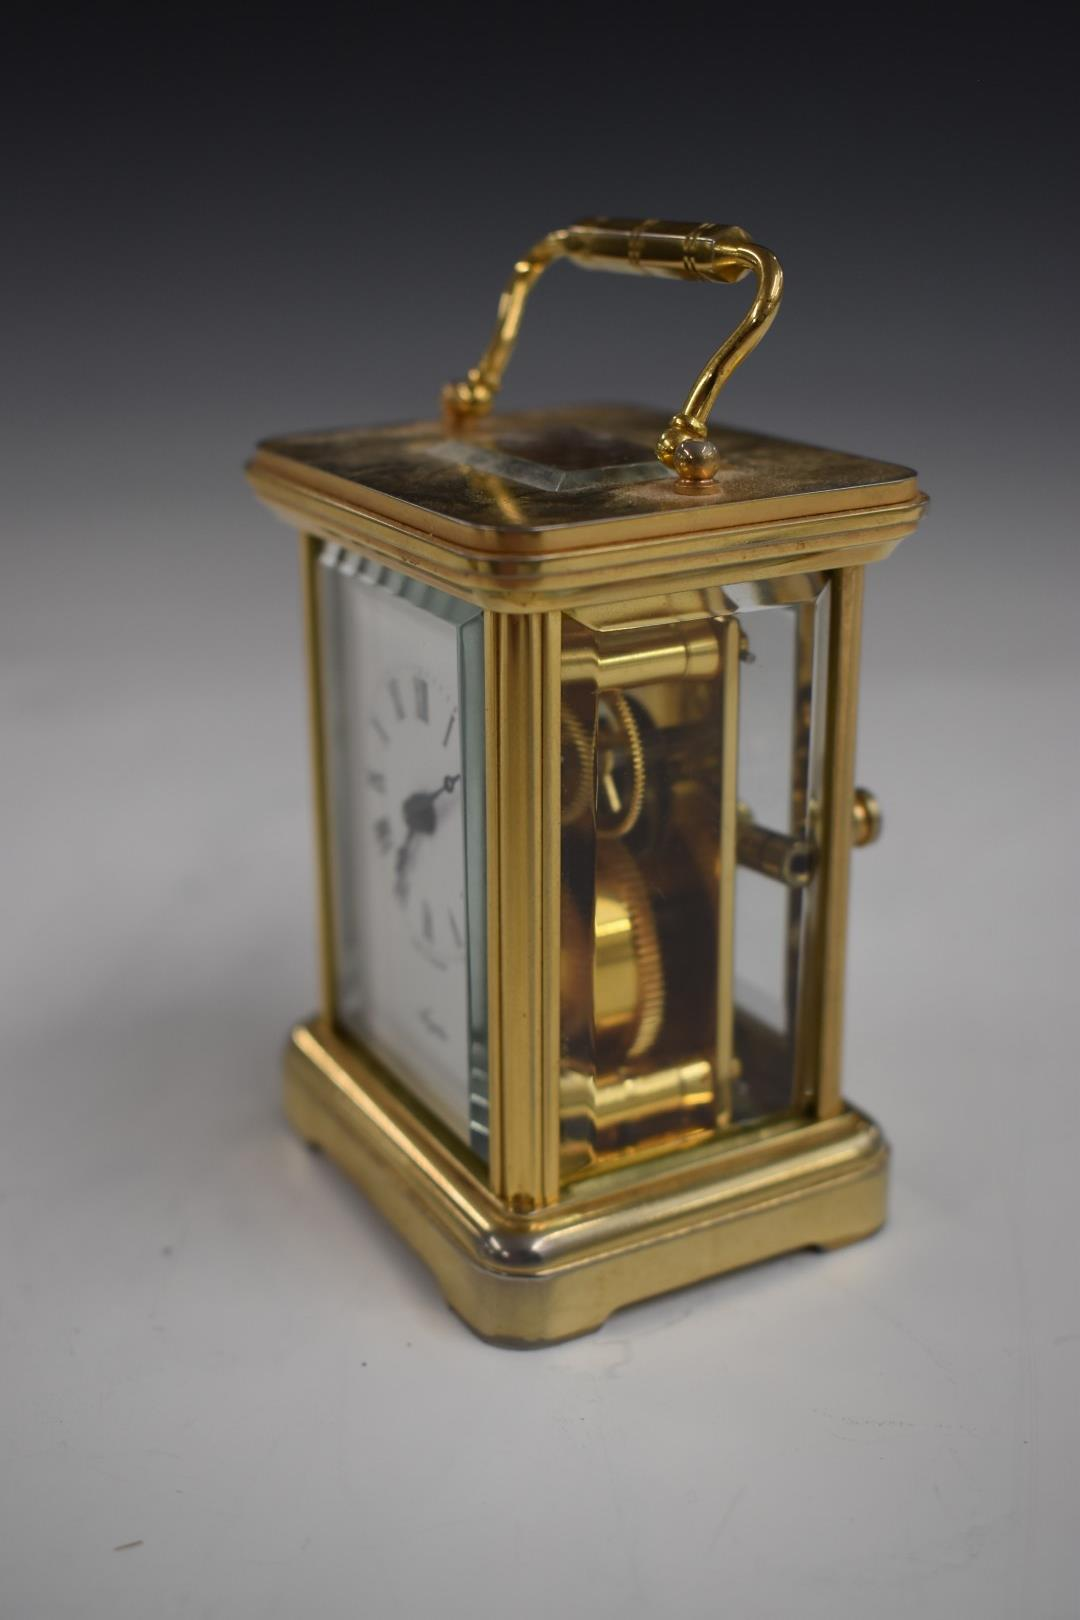 Angelus miniature brass carriage clock with enamelled Roman dial and Breguet style hands, 7.5cm - Image 3 of 5